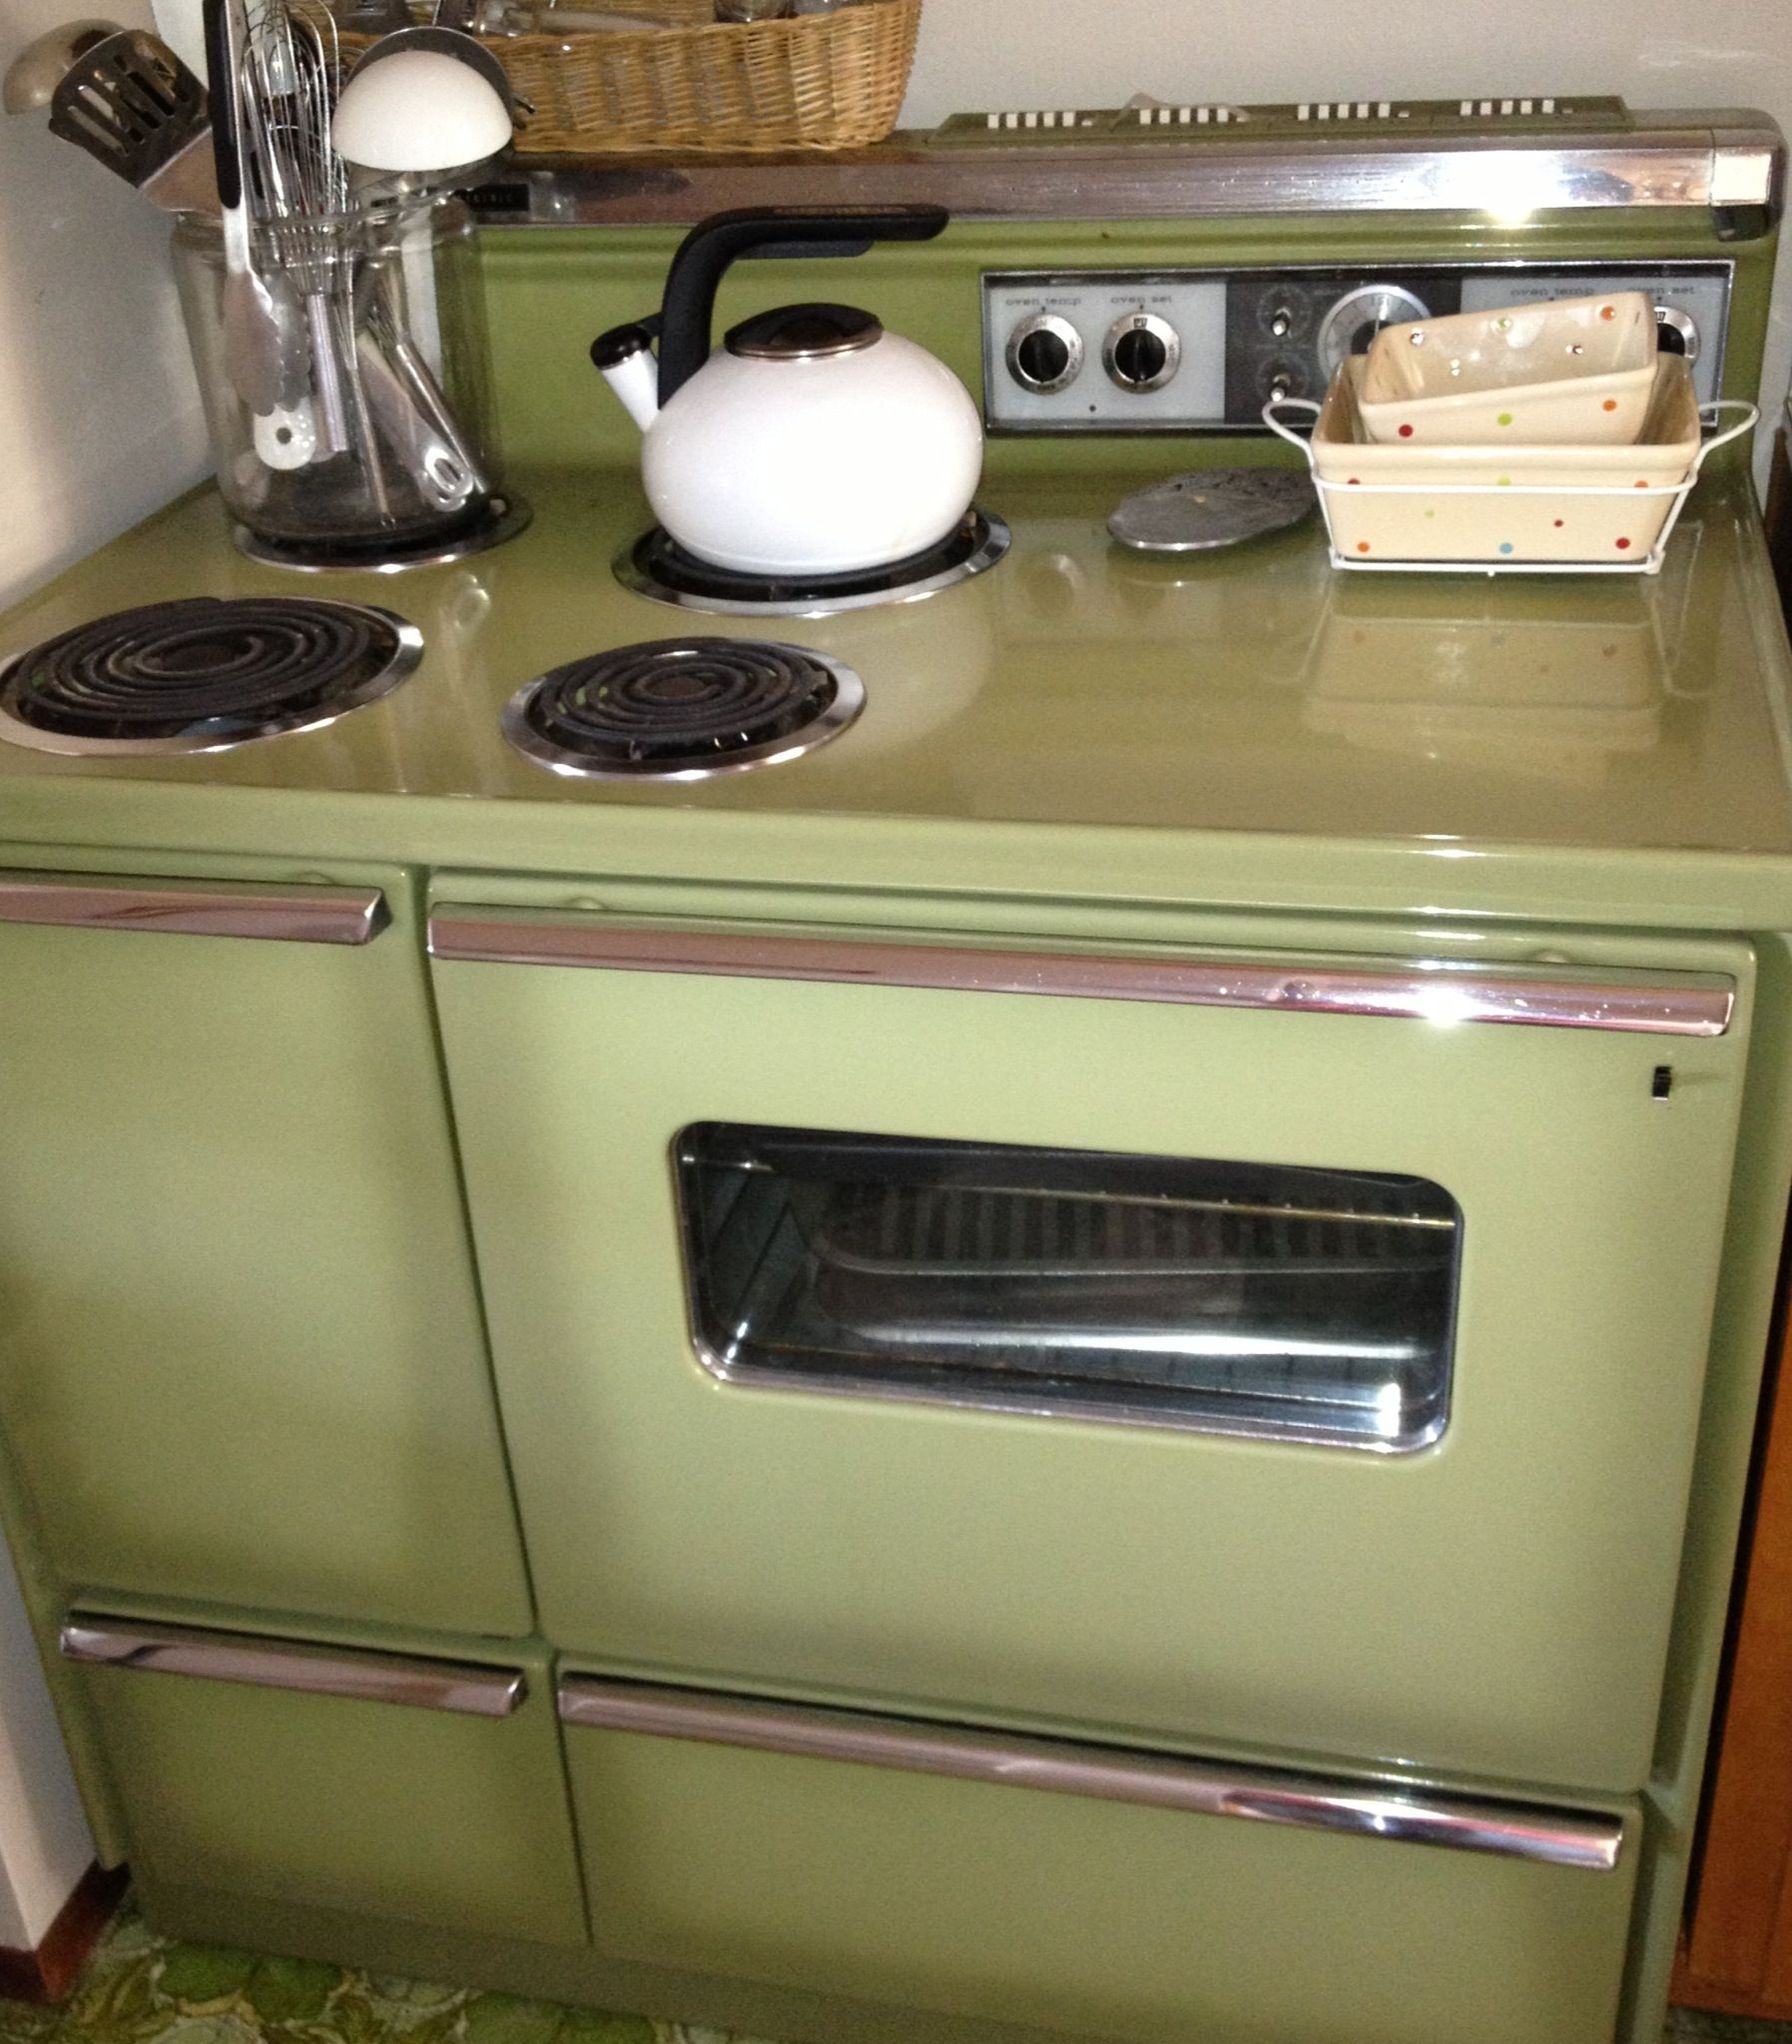 While I Really Dislike The Avocado Green Color I Absolutely Love My 1964 General Electric Push Vintage Refrigerator Vintage Kitchen Appliances Vintage Kitchen